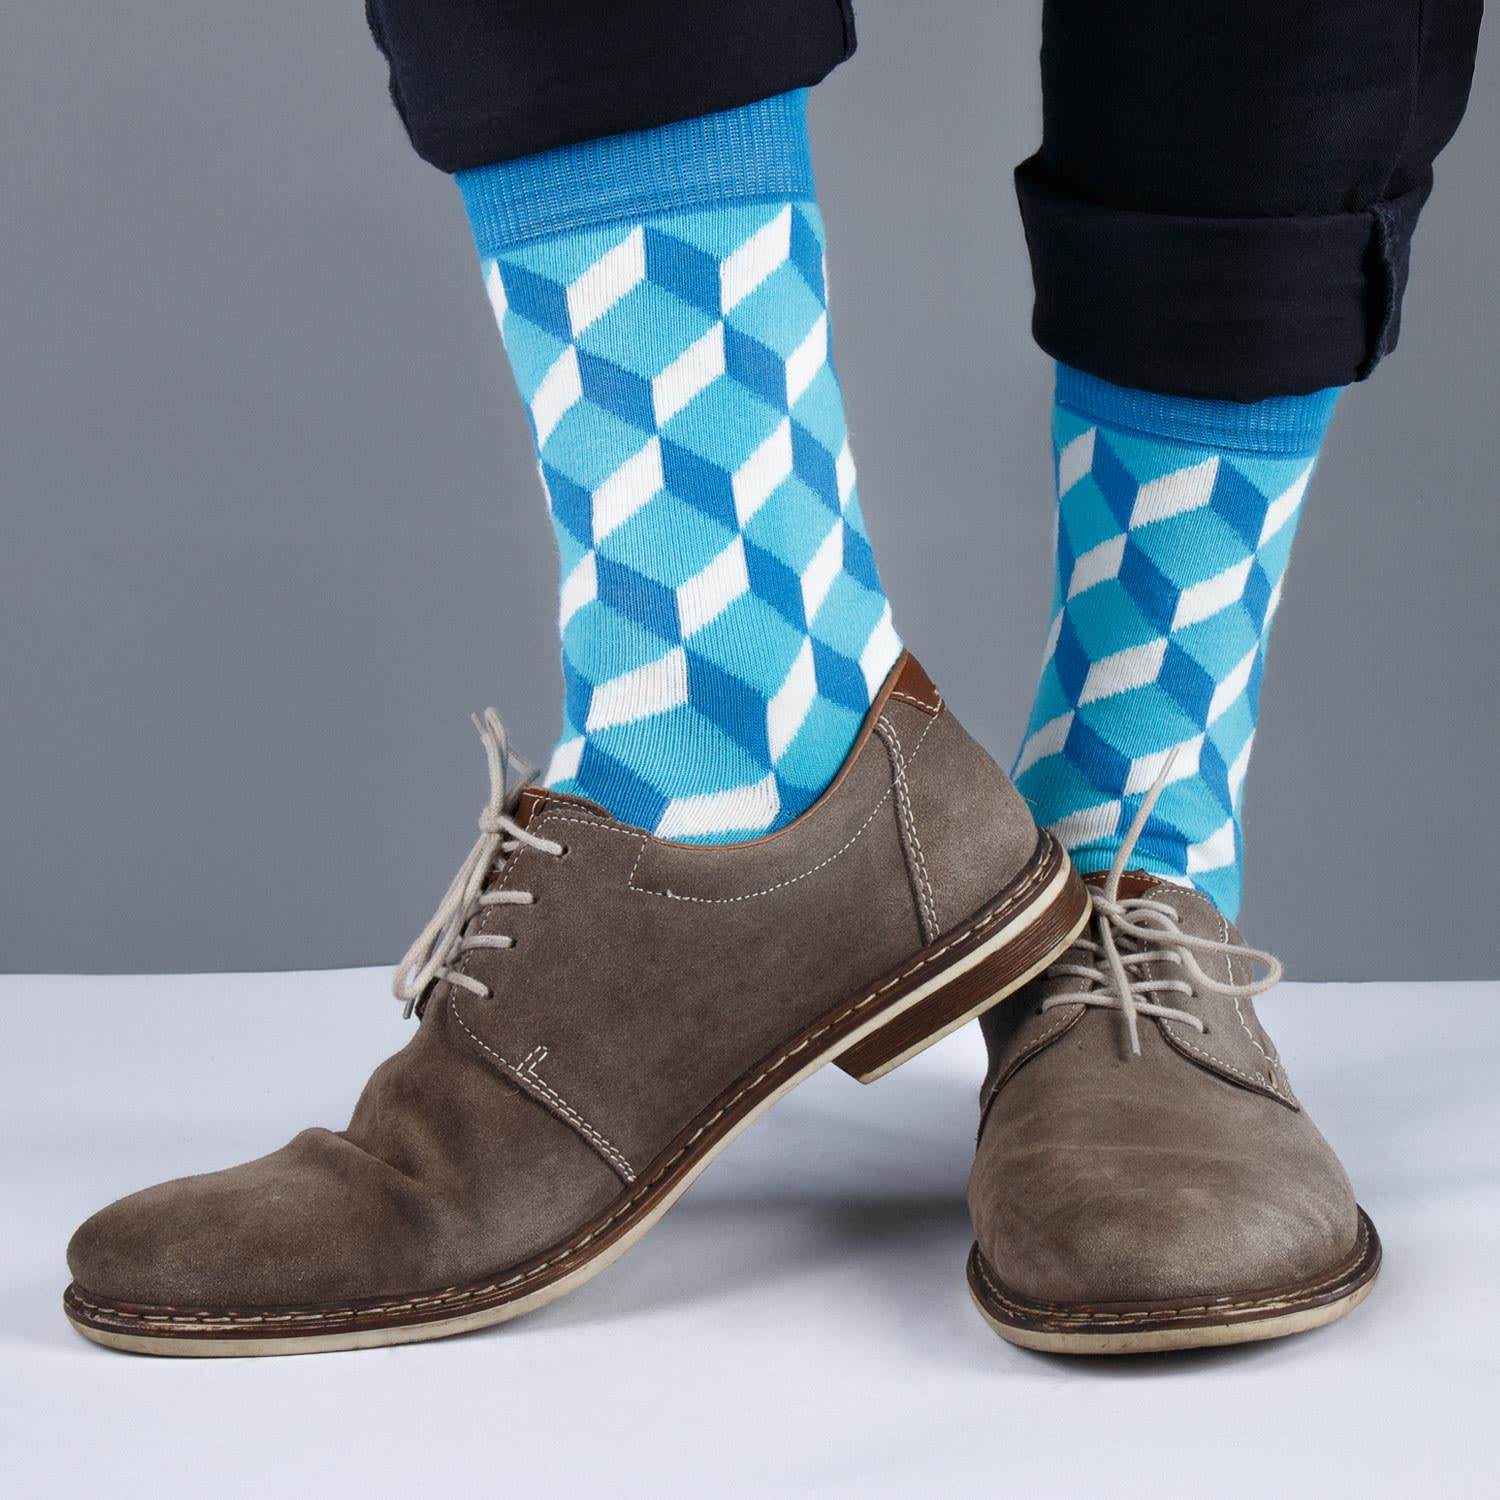 socks with blue and white pattern